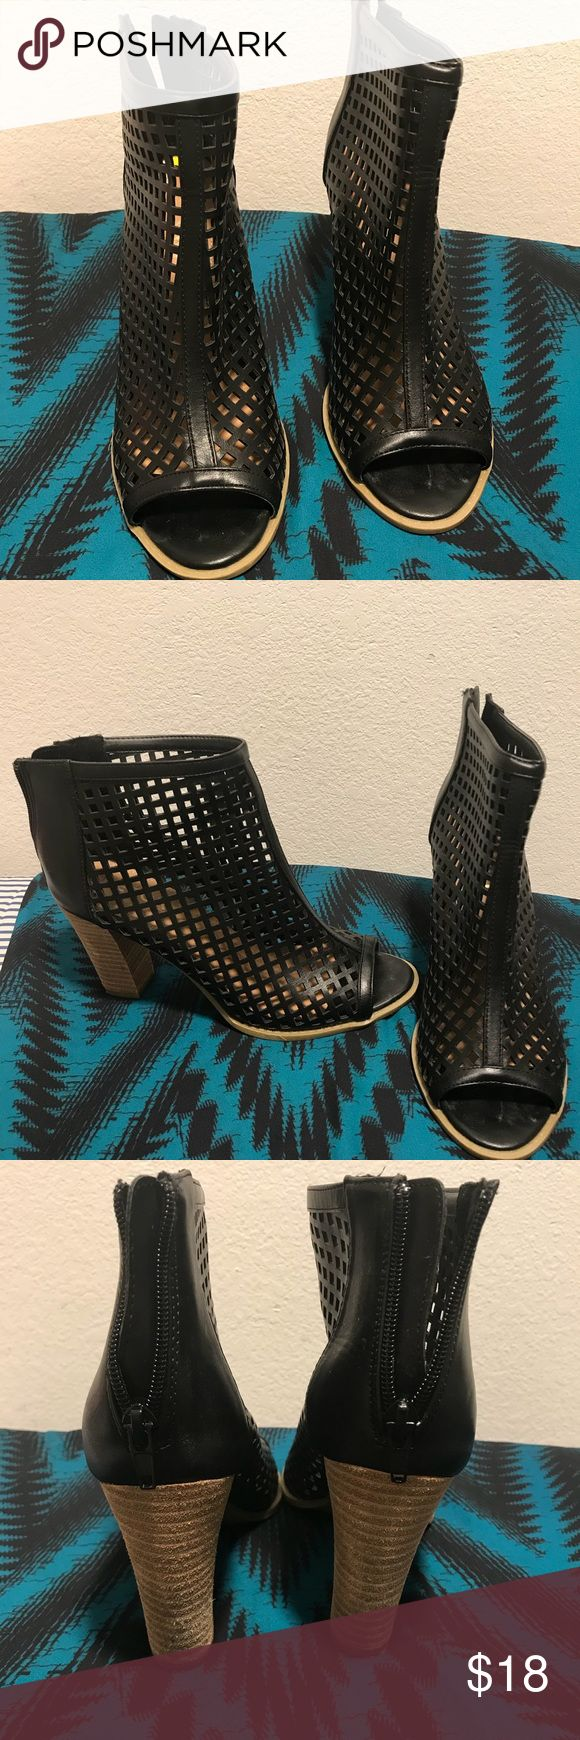 Ankle booties with zip up back black 9 Fun peep toe shoe goes with jeans, dresses, or skirts. Wore only once. Excellent condition. Report Shoes Ankle Boots & Booties